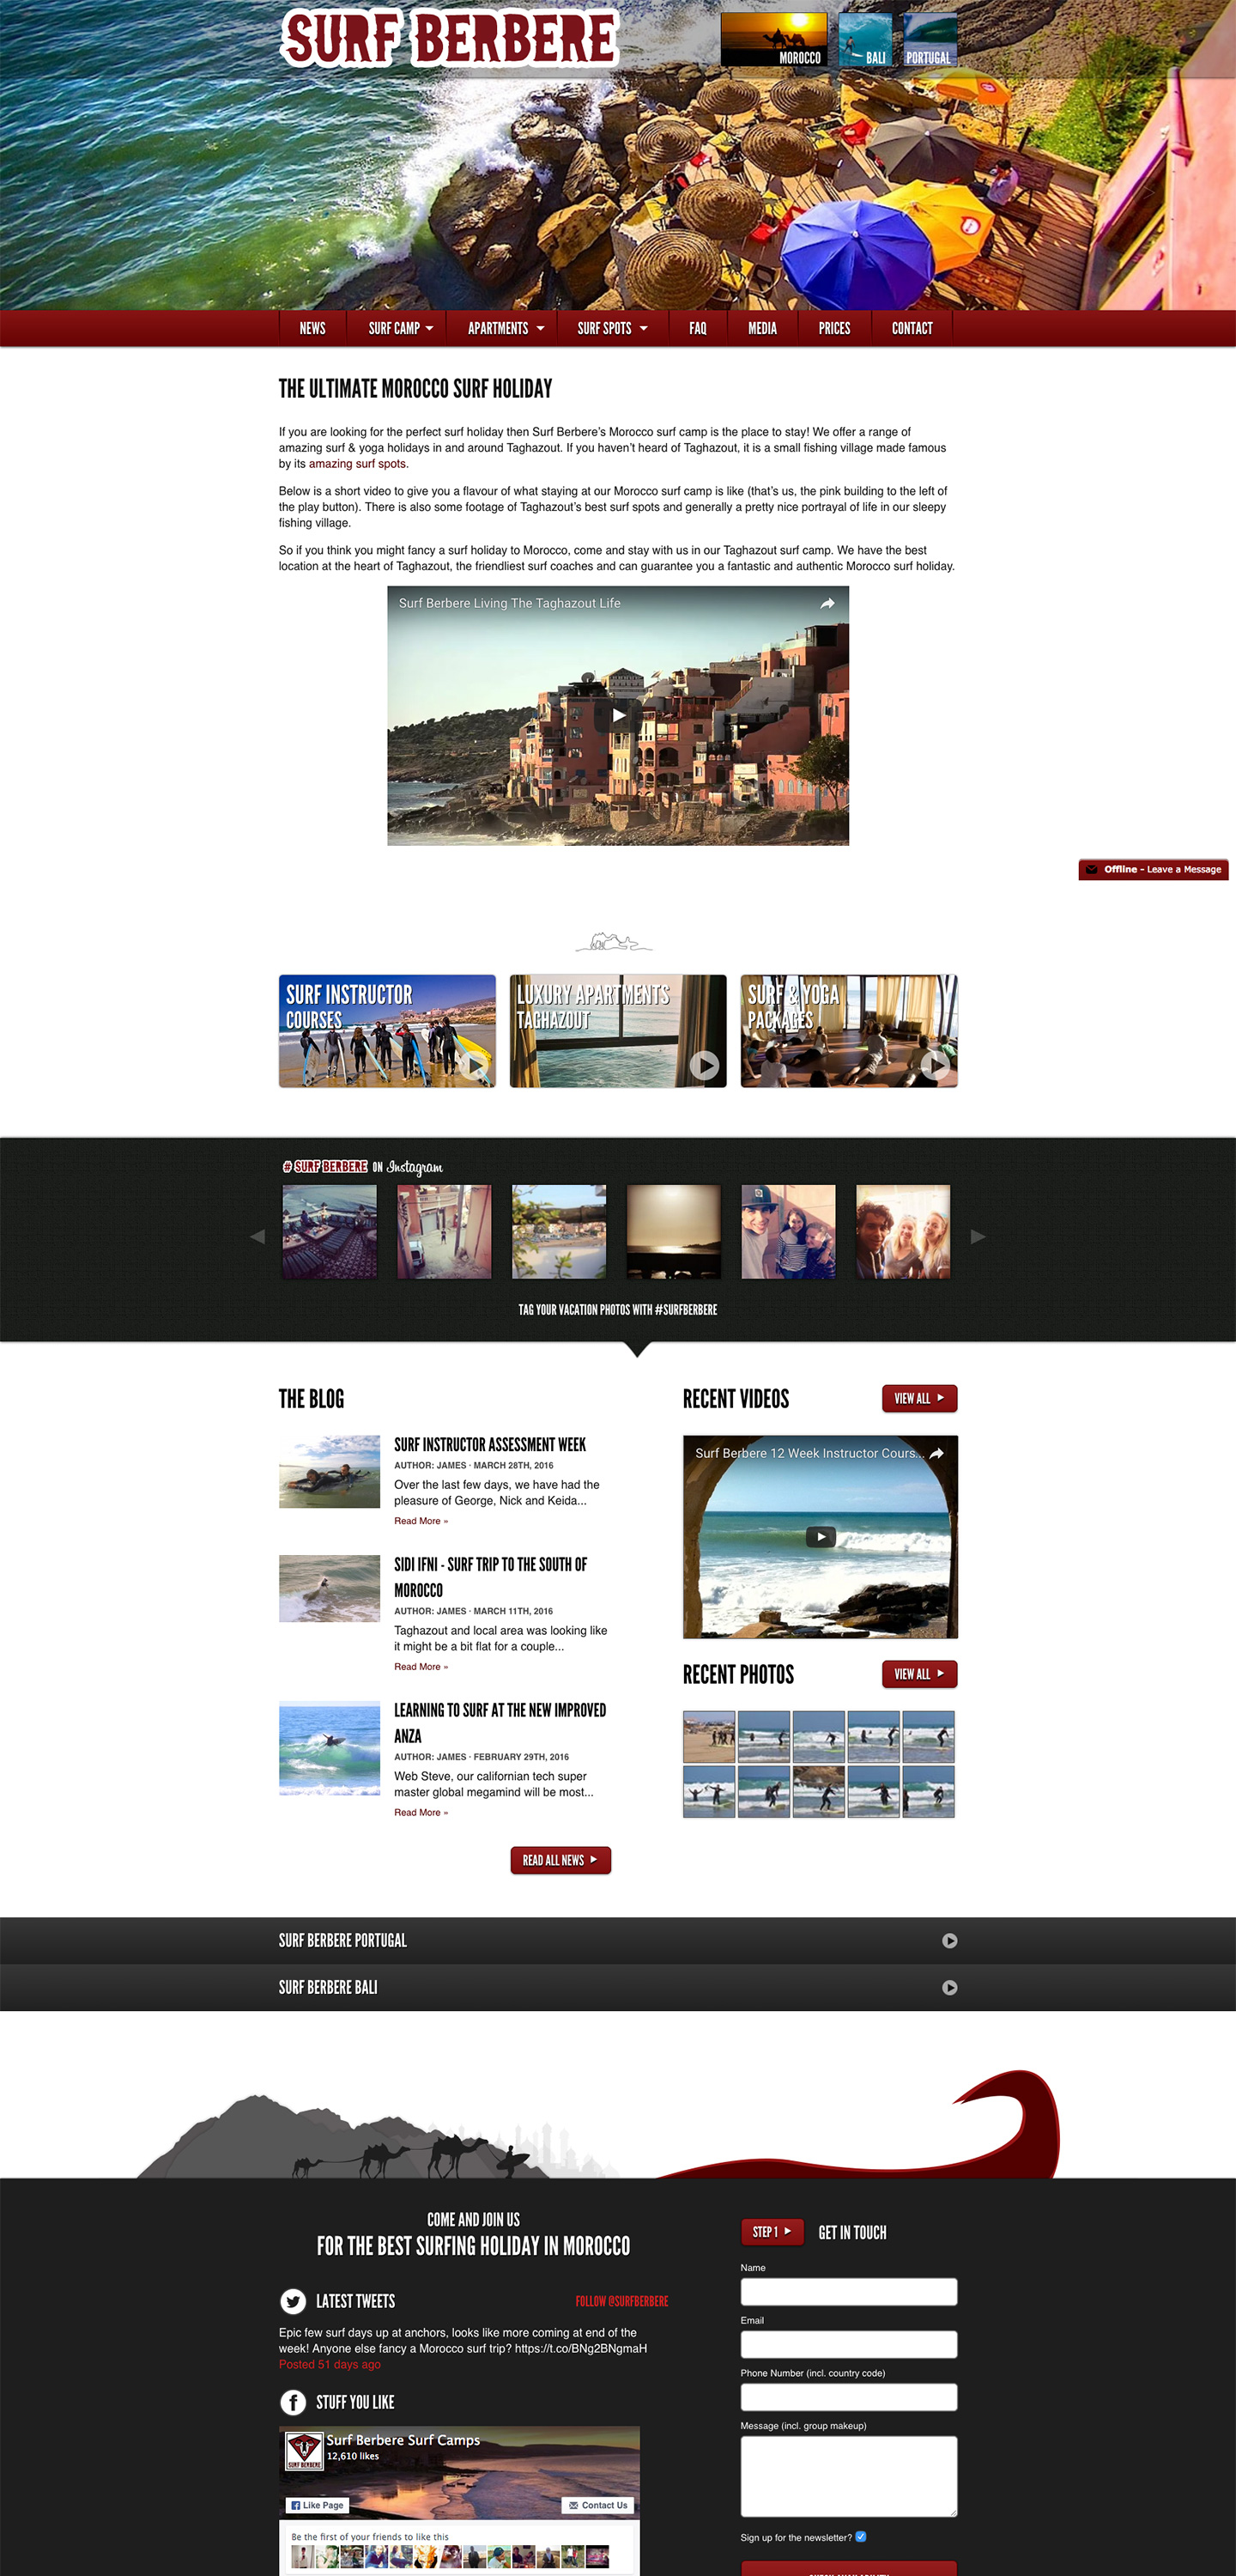 Surf Berbere website built by Aquatic in San Francisco